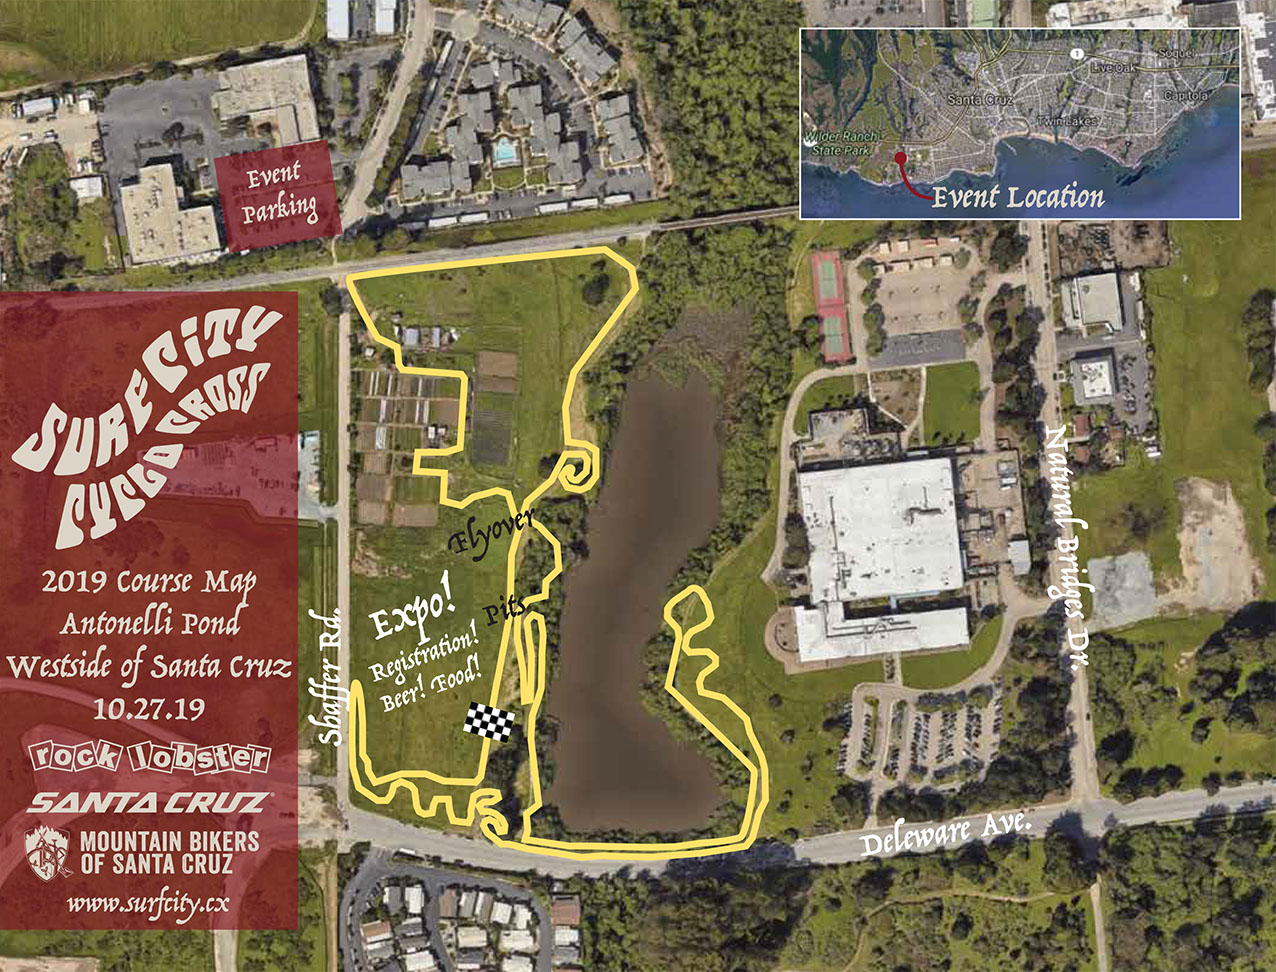 The 2019 Surf City CX Course map at Antonelli Pond